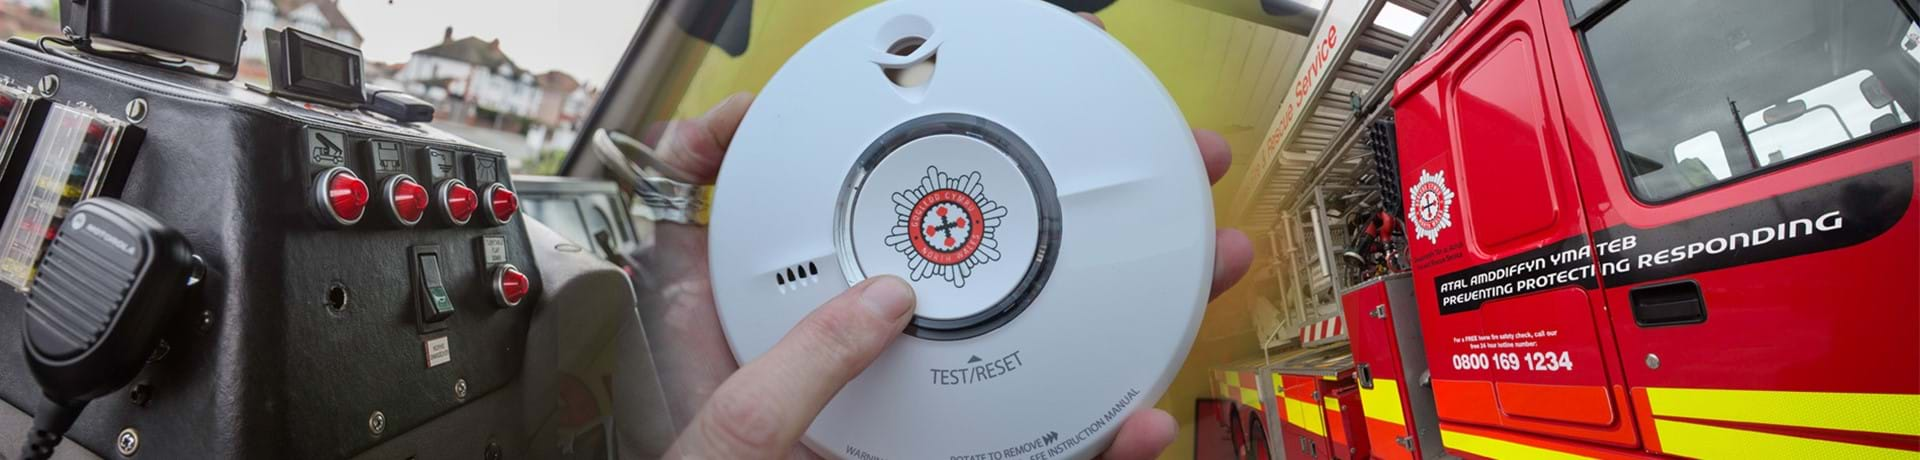 Promoting smoke alarm testing